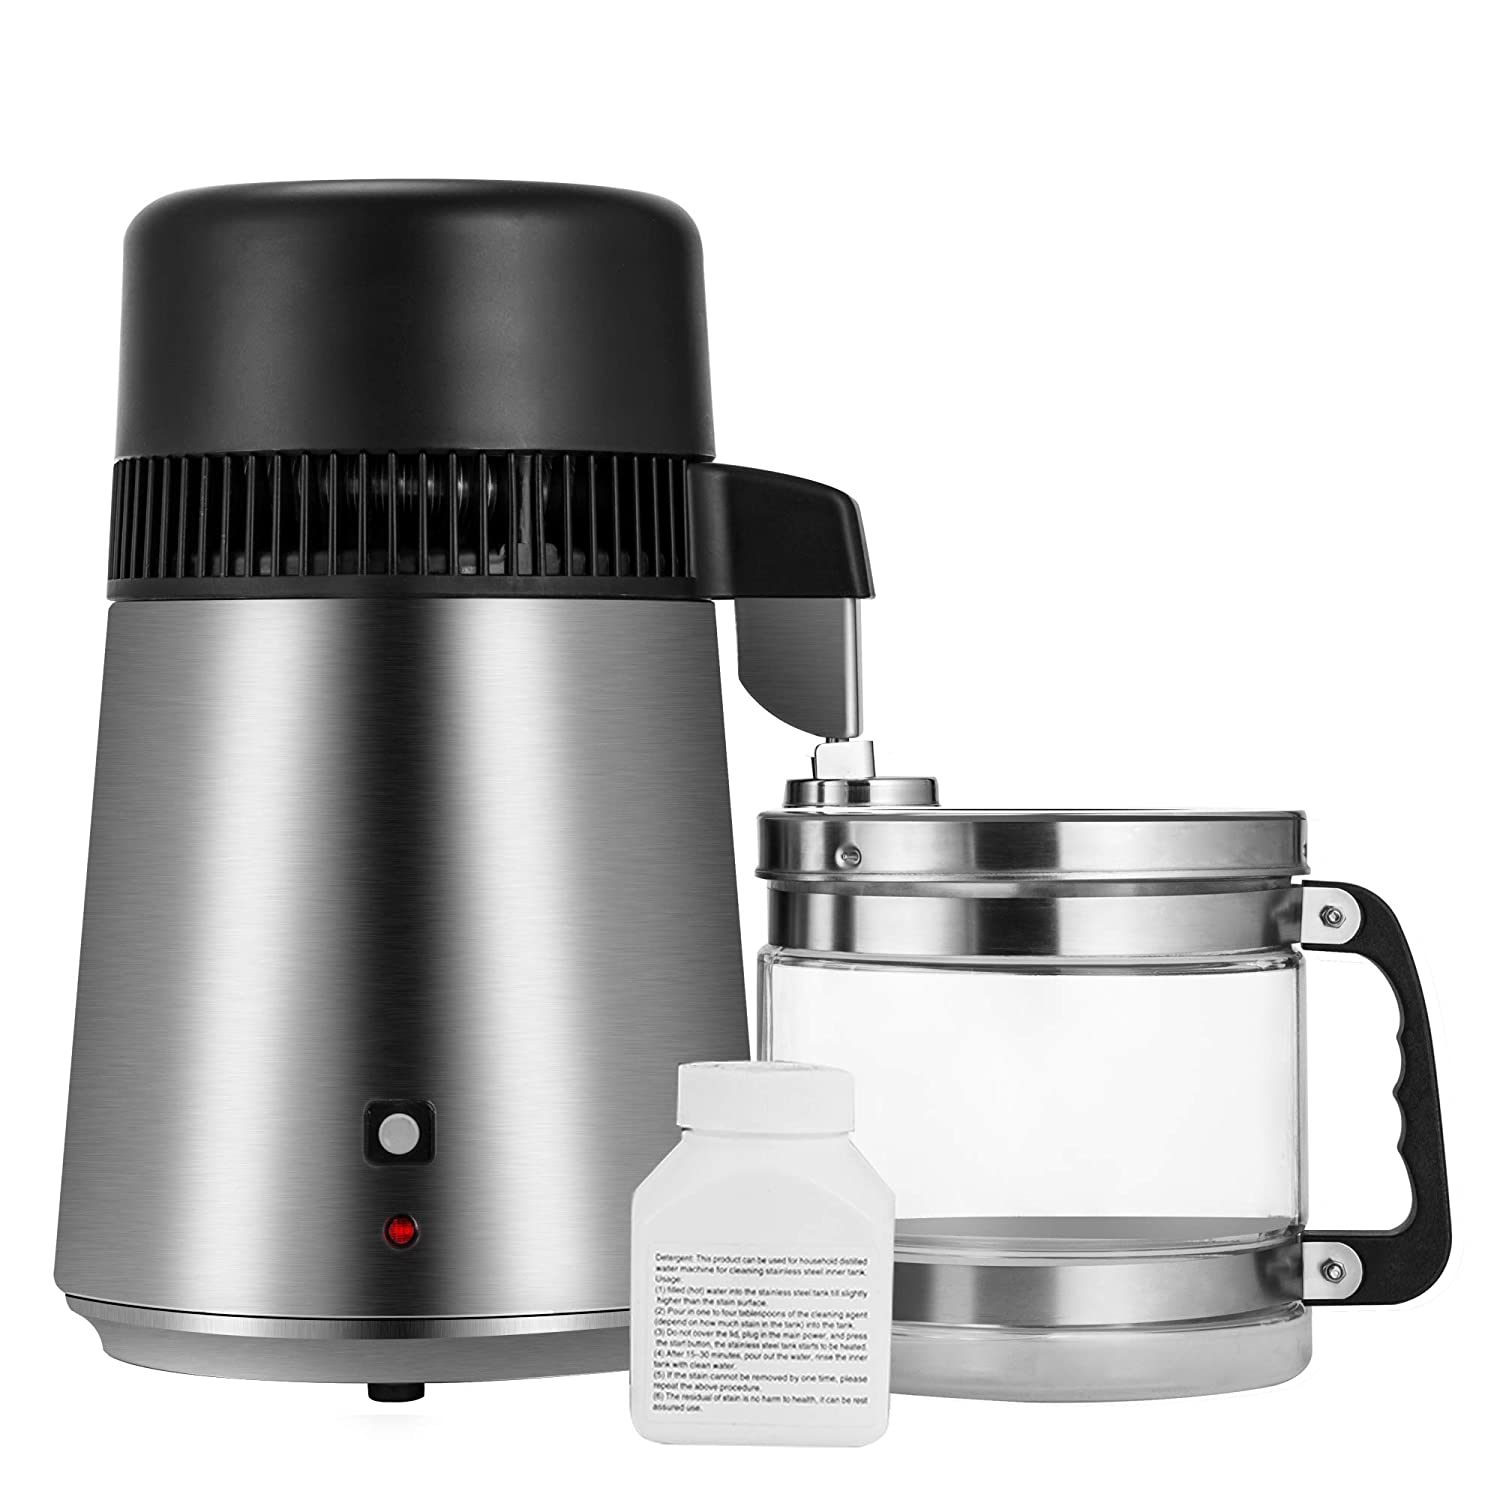 Gowintech 110V 750W 4L Brushed Stainless Steel Countertop Water Distiller Filter Machine with Glass Collection Carafe and 3 Charcoal Filters for Home Lab Dental Office